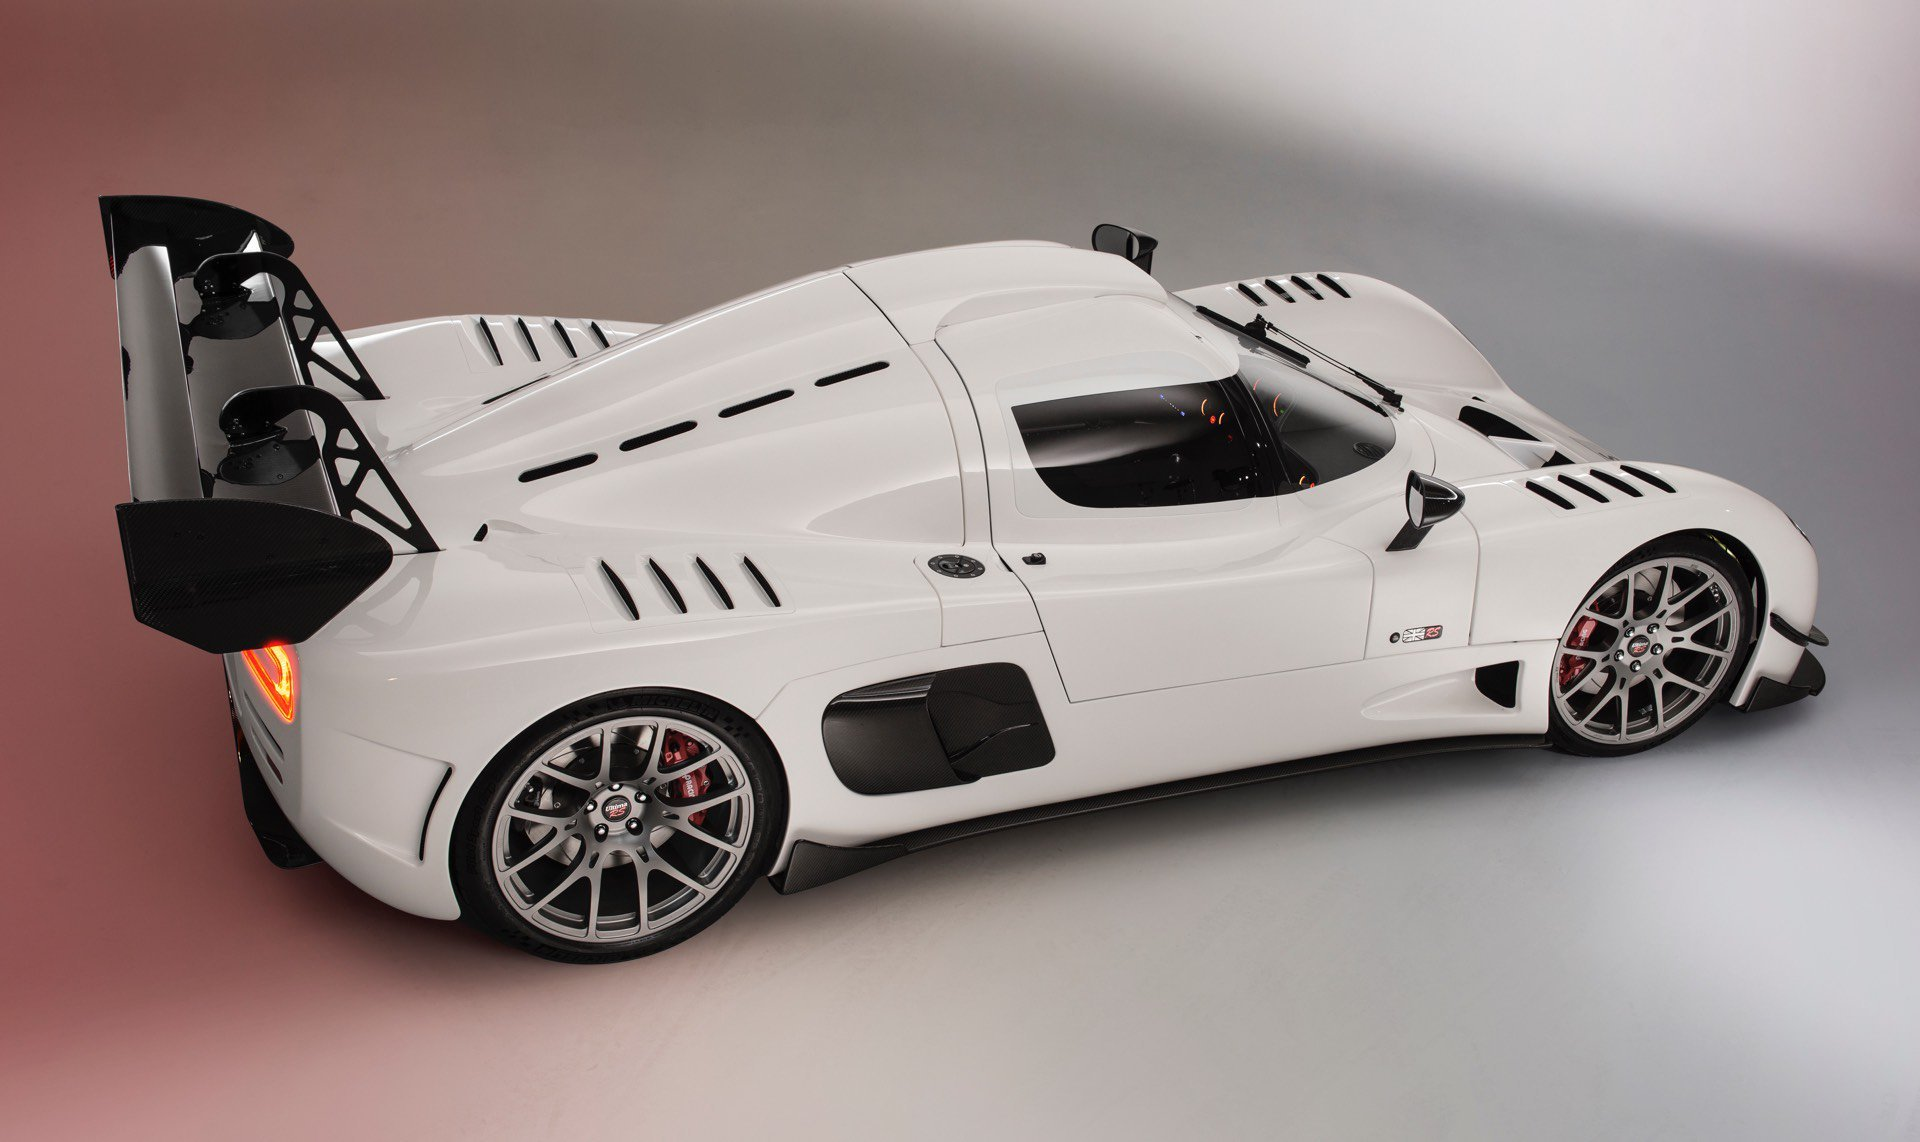 Ultima Rs 2019 6